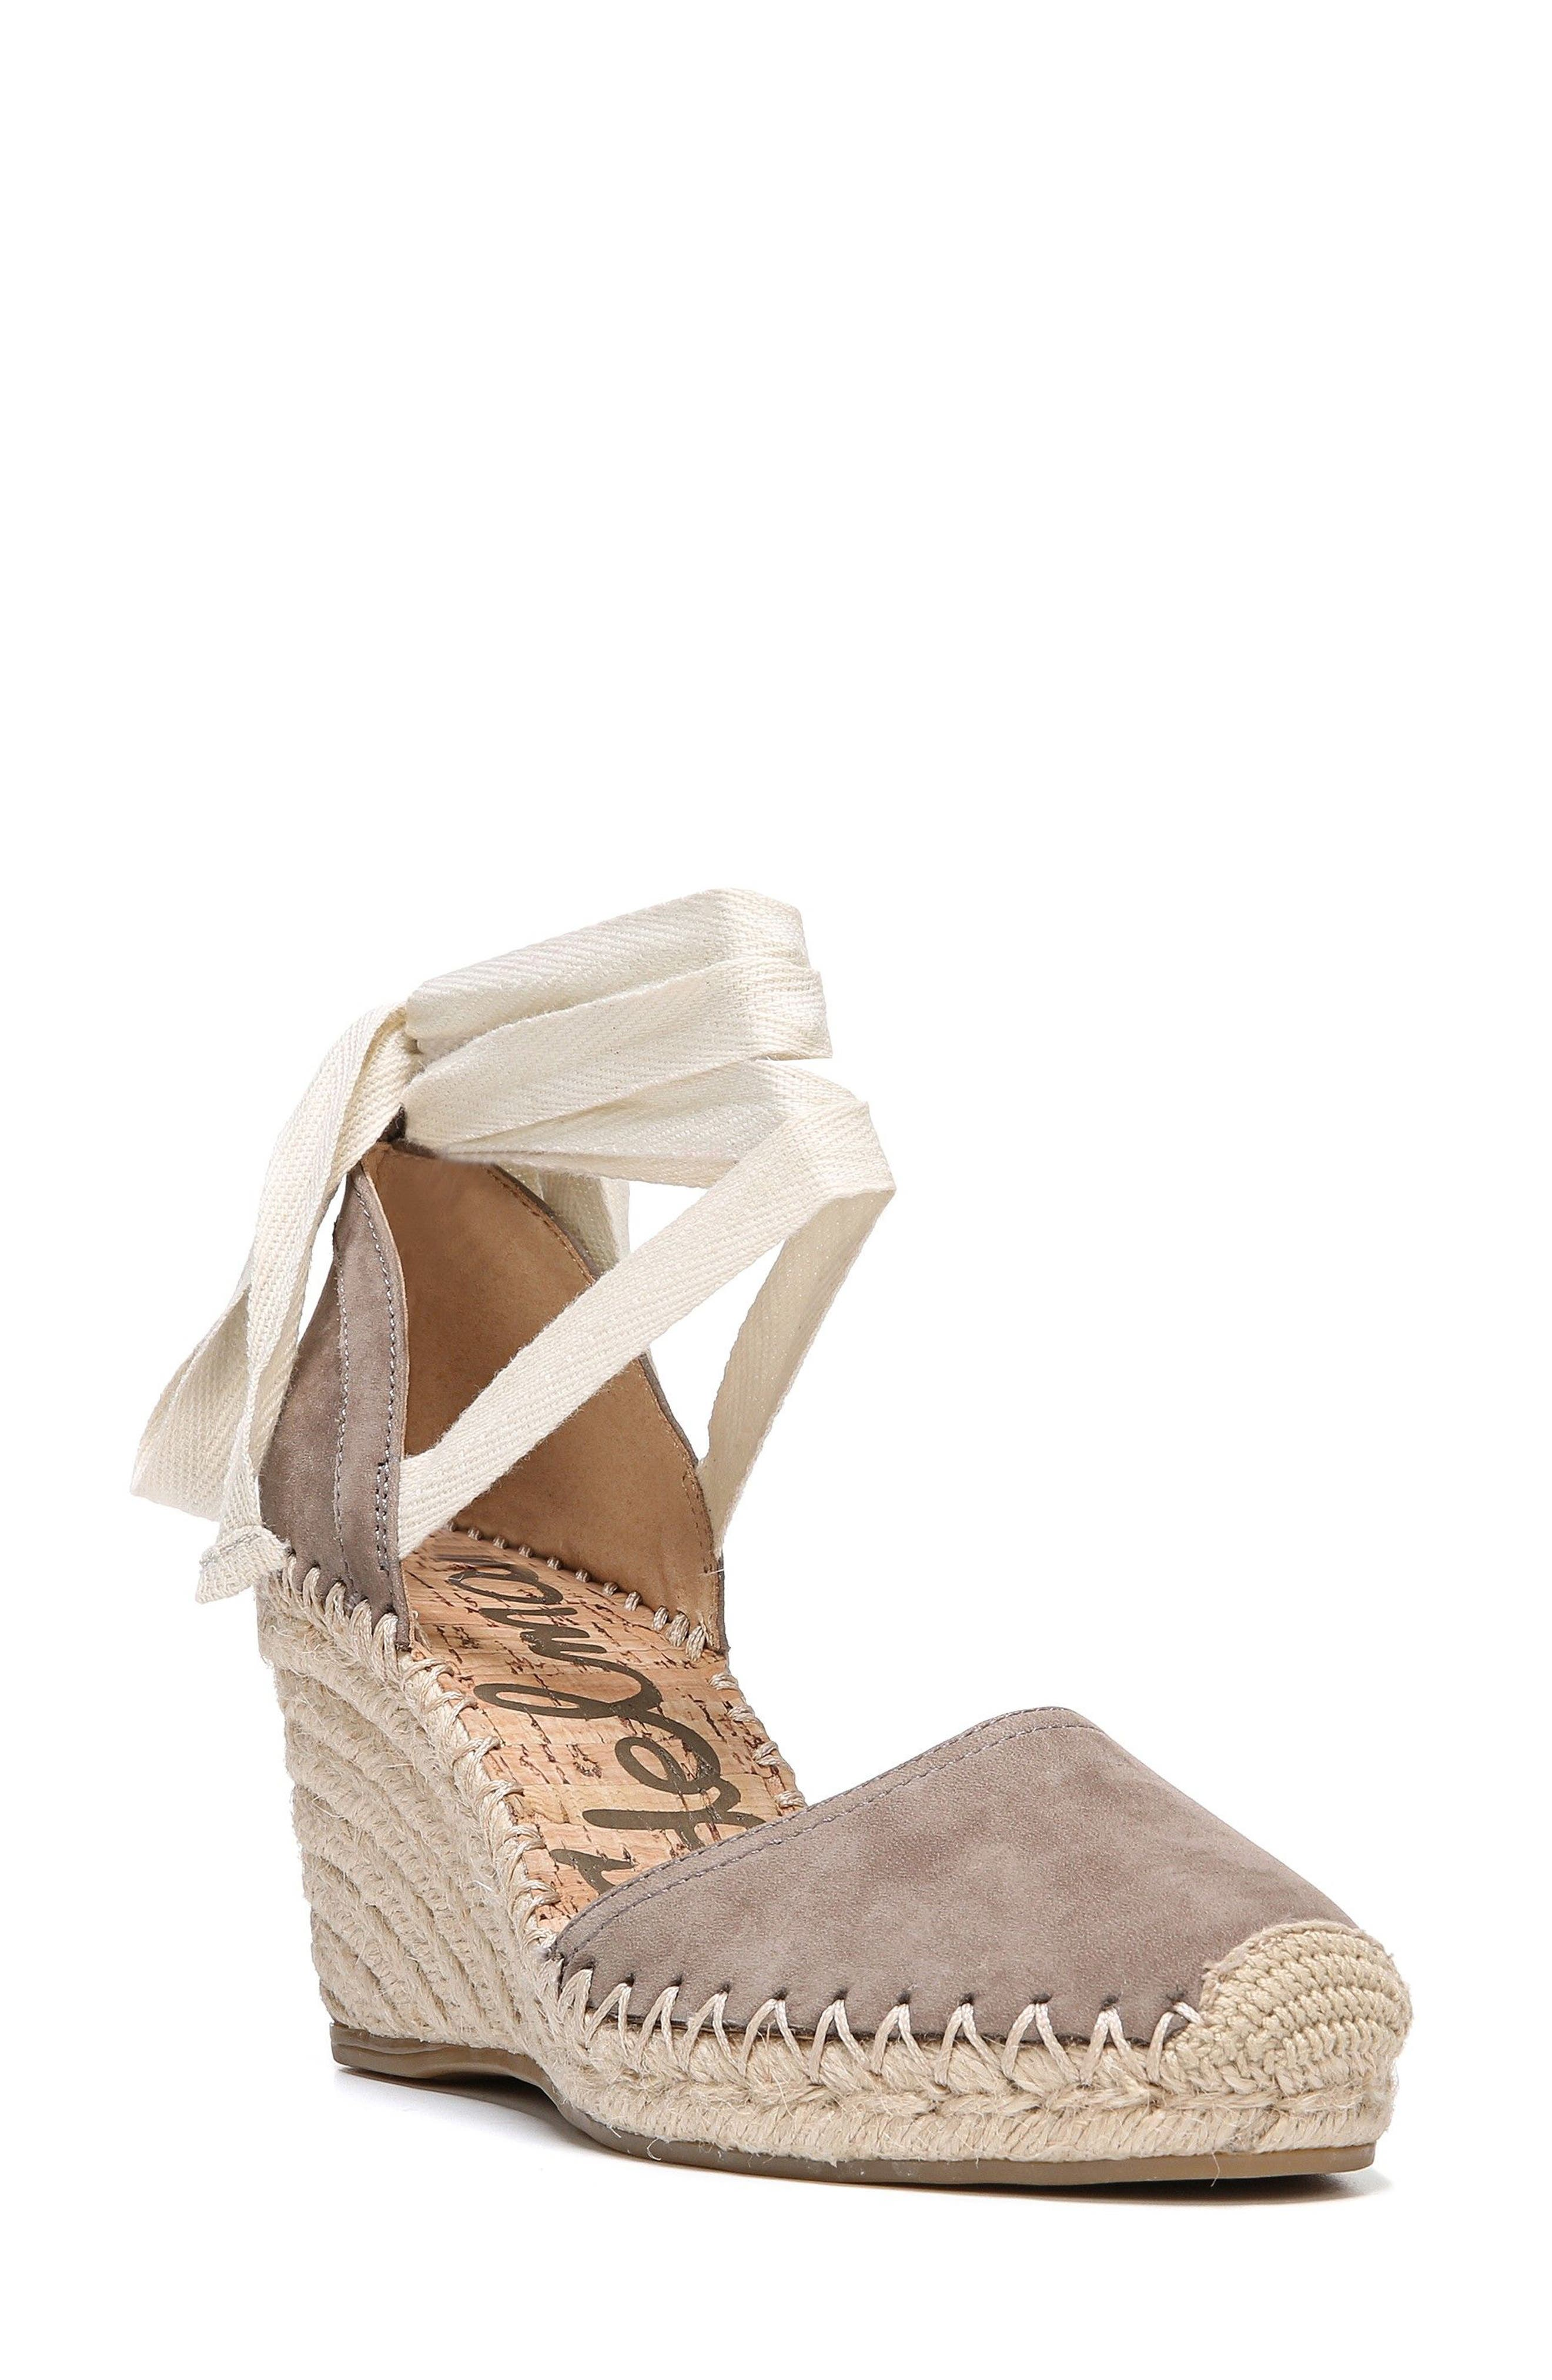 Patsy Wraparound Espadrille Wedge,                         Main,                         color, 020